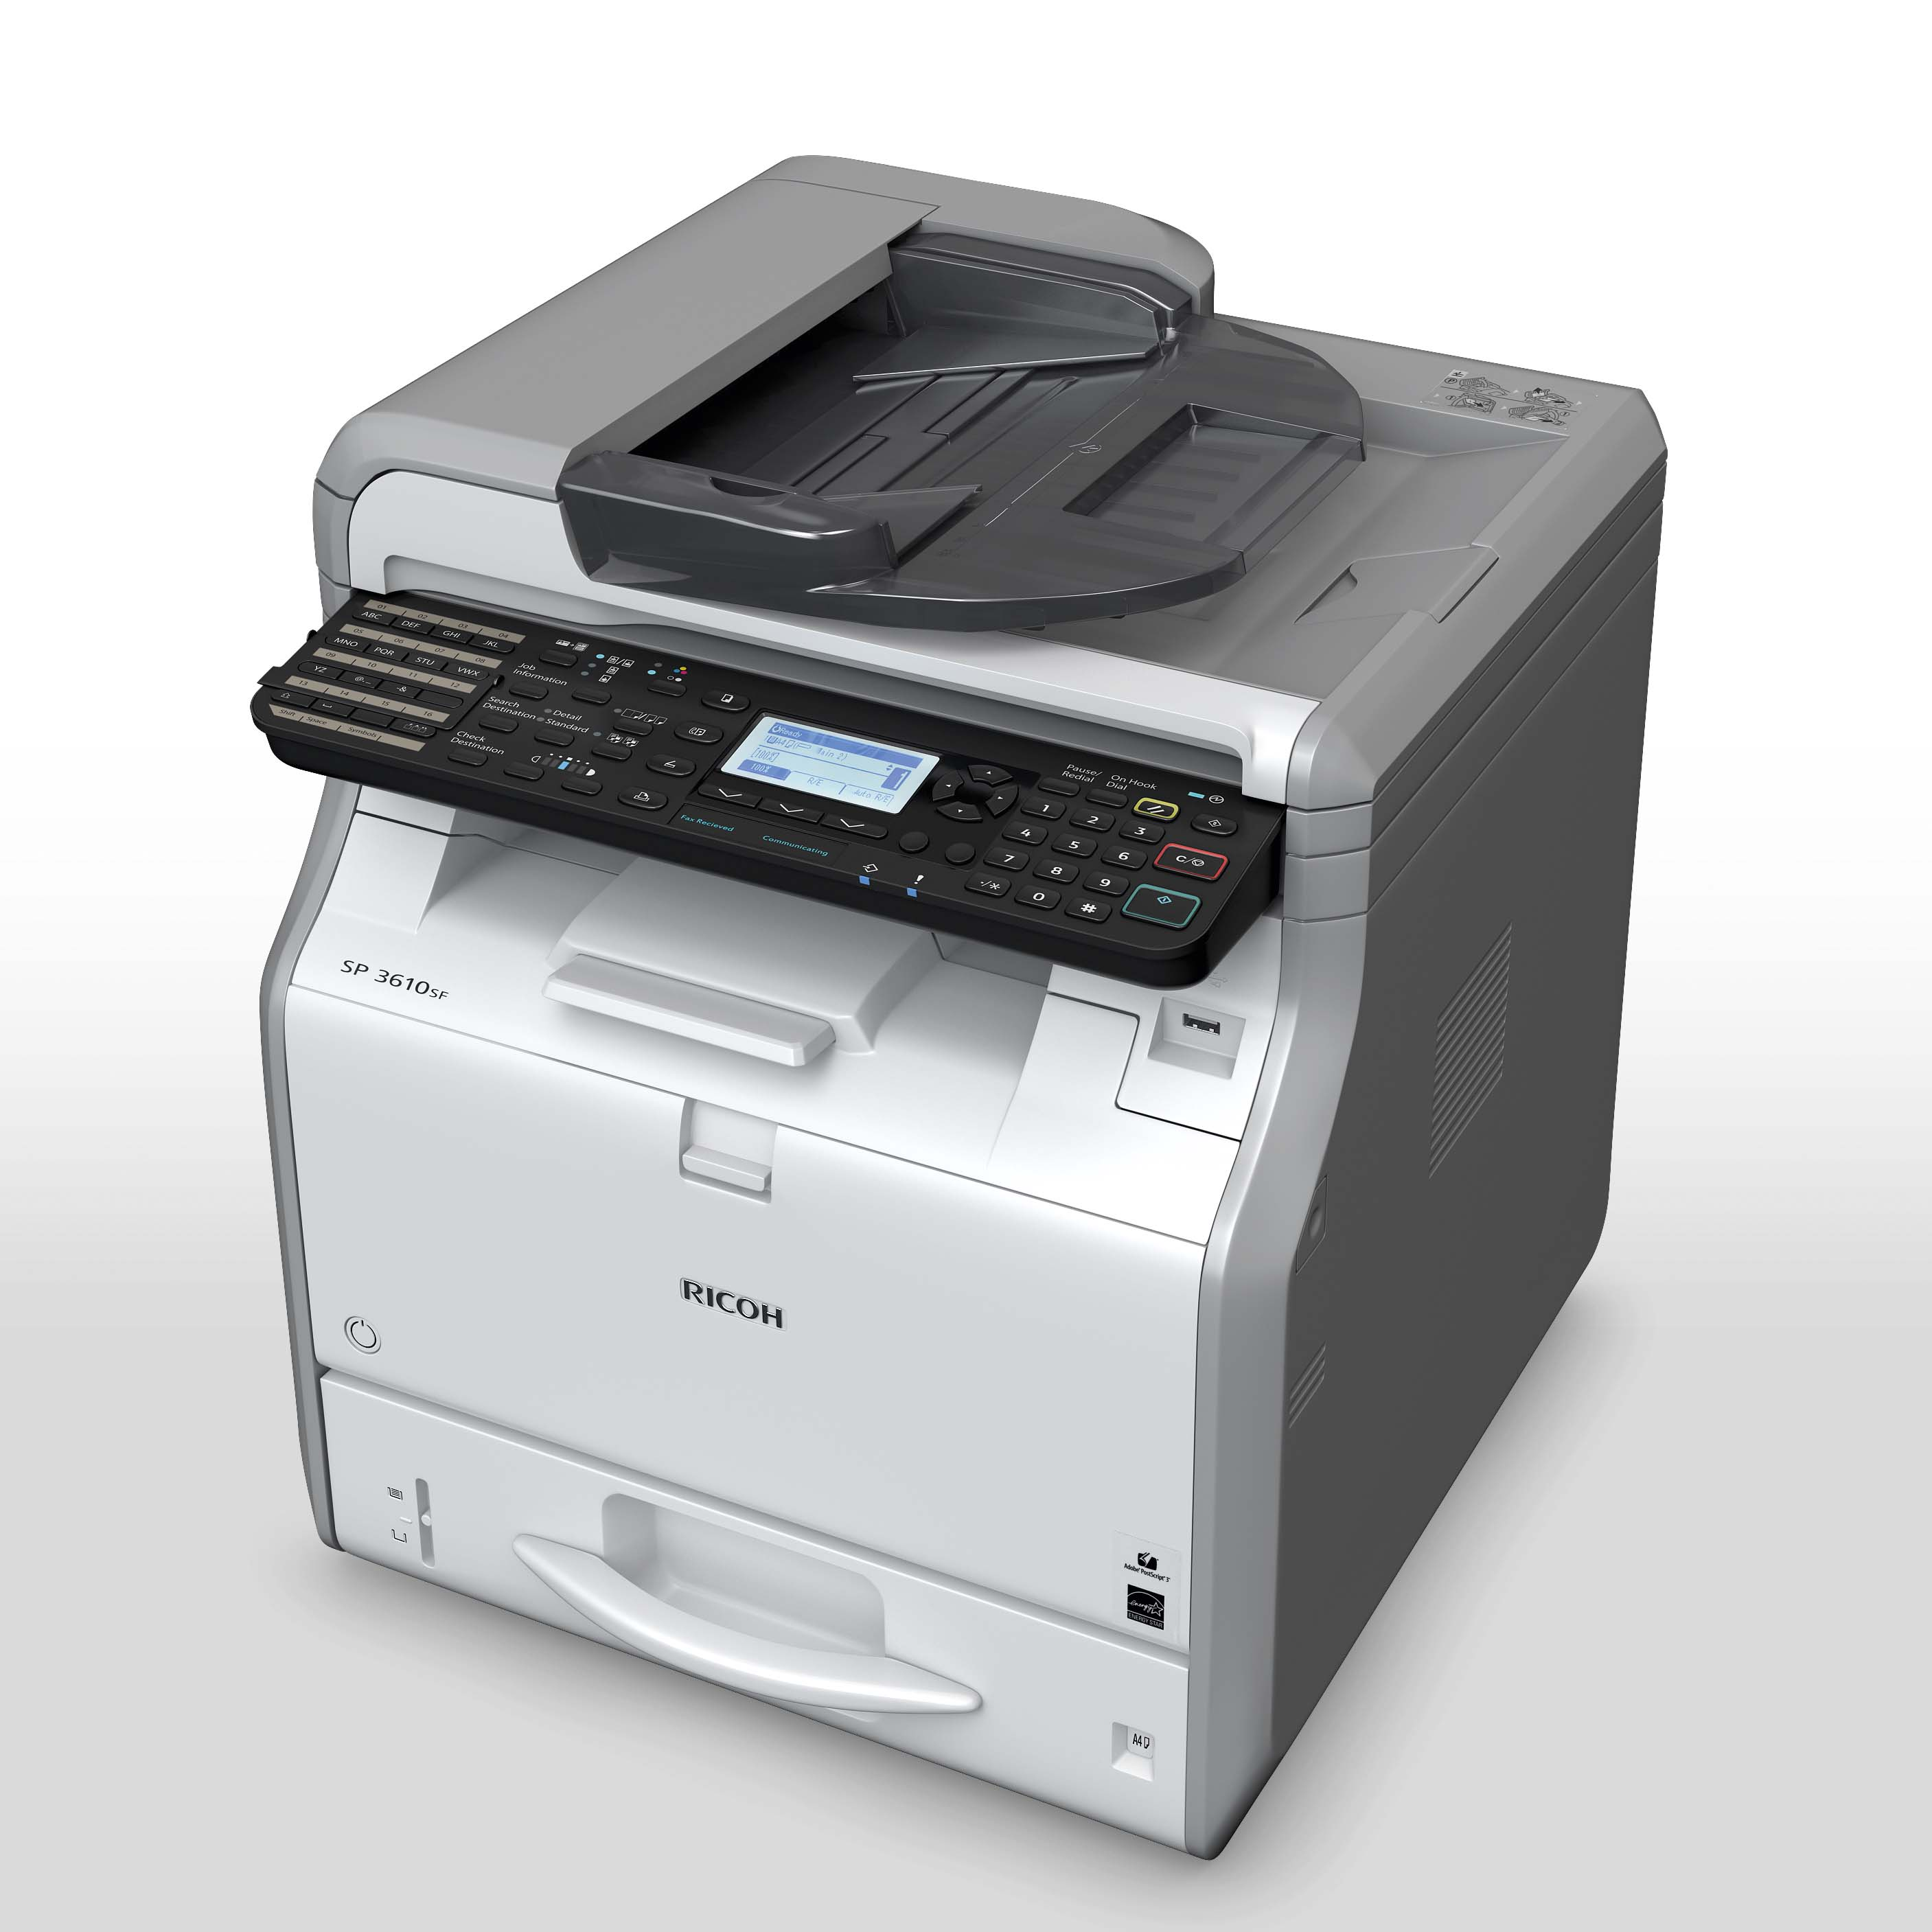 Ricoh, SP, 3610SF, A4, LED, MFP, 30ppm, Laser, Printer,